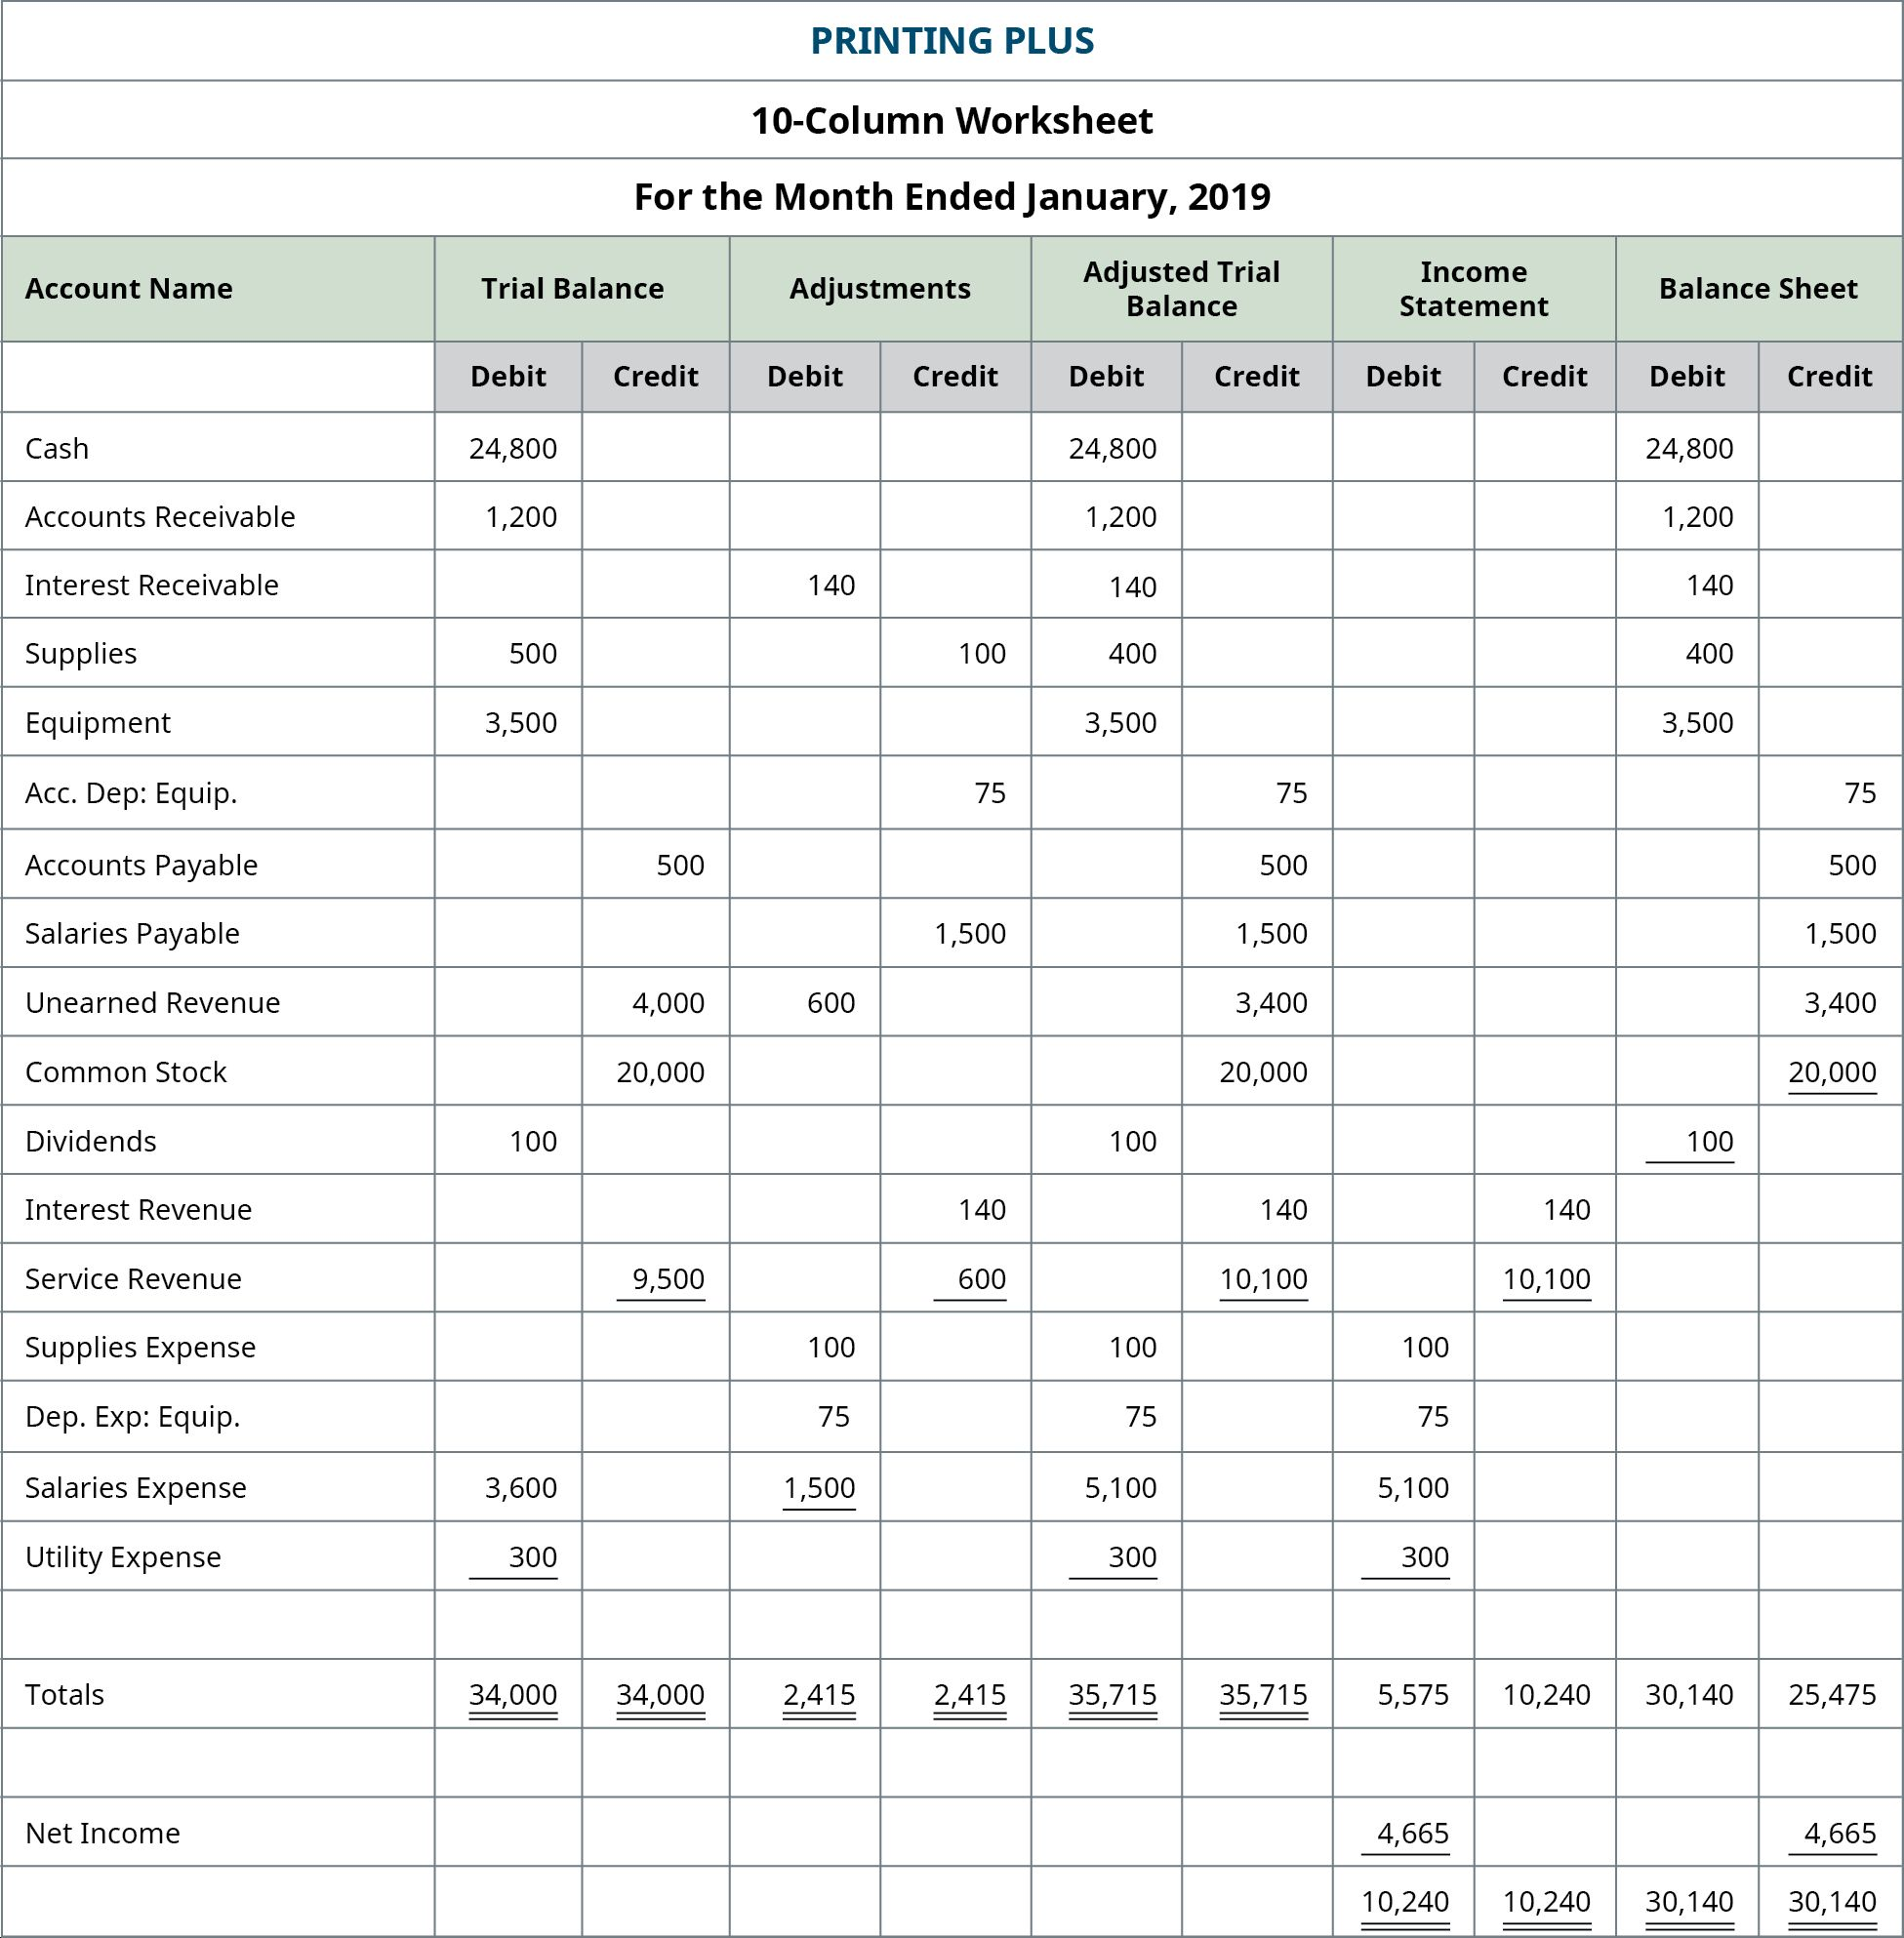 Worksheet Format Accounting Excel Income Statement And